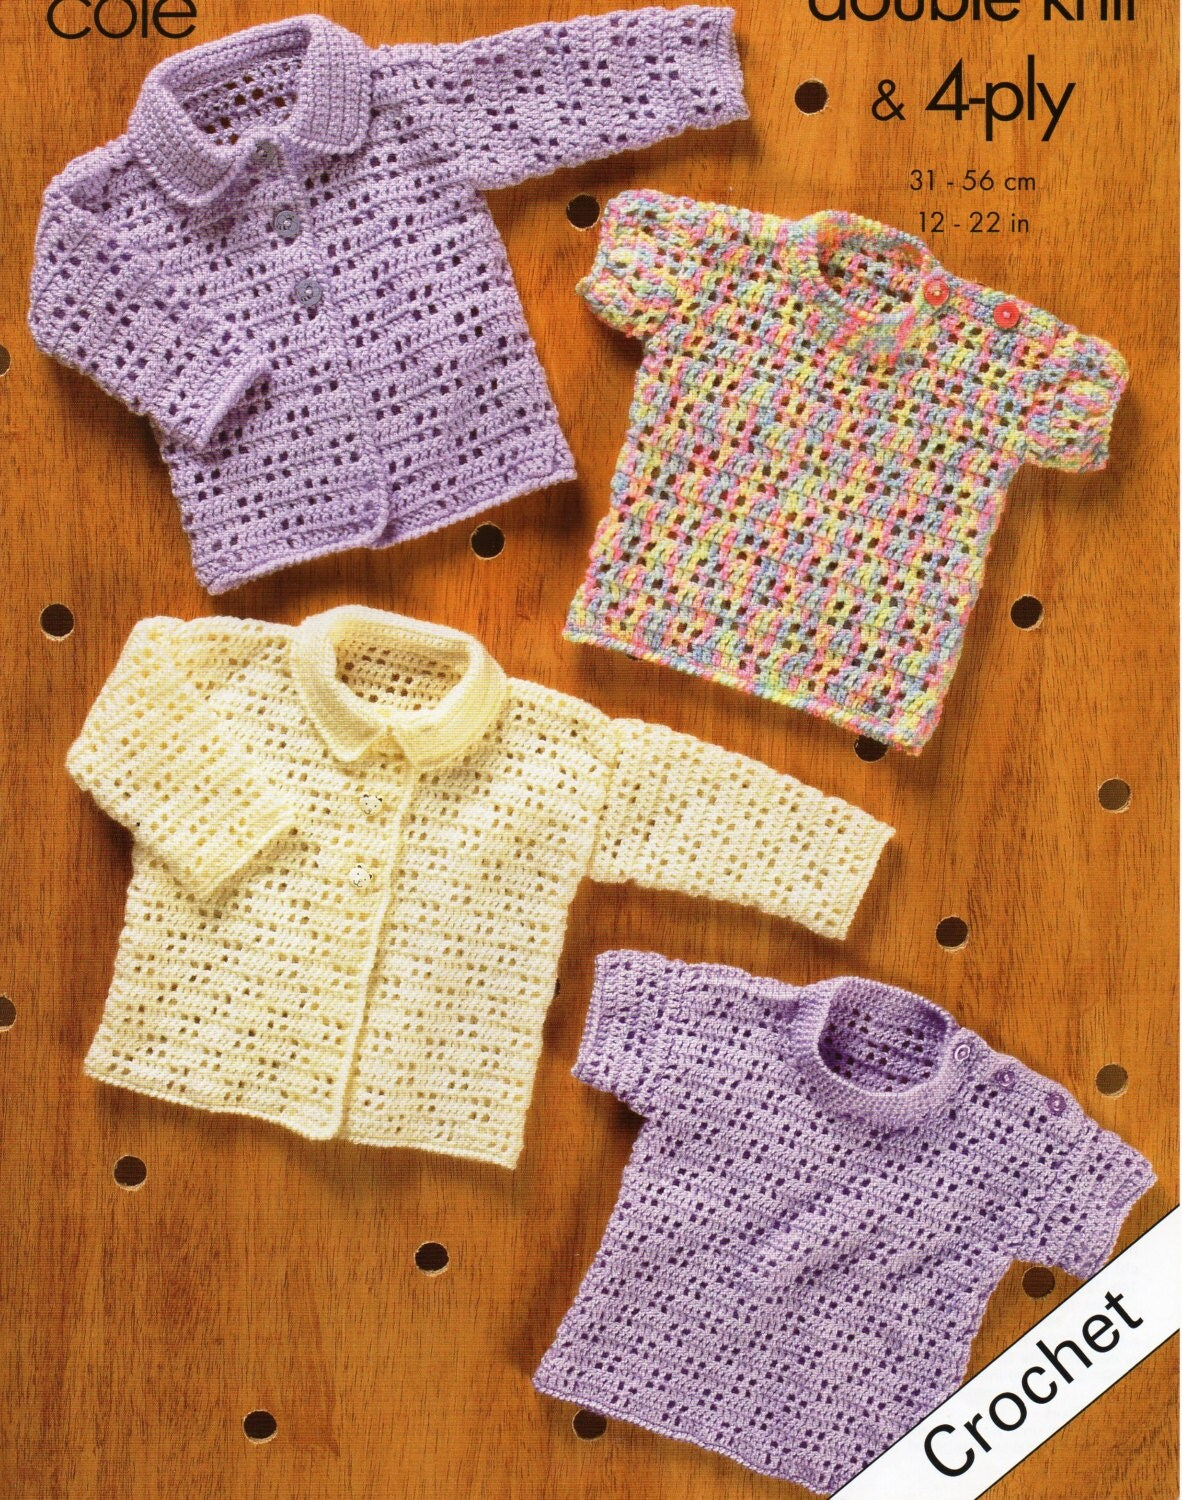 Premature Baby Crochet Cardigan Pattern : Baby CROCHET Pattern Baby Crochet Cardigan Baby Crochet